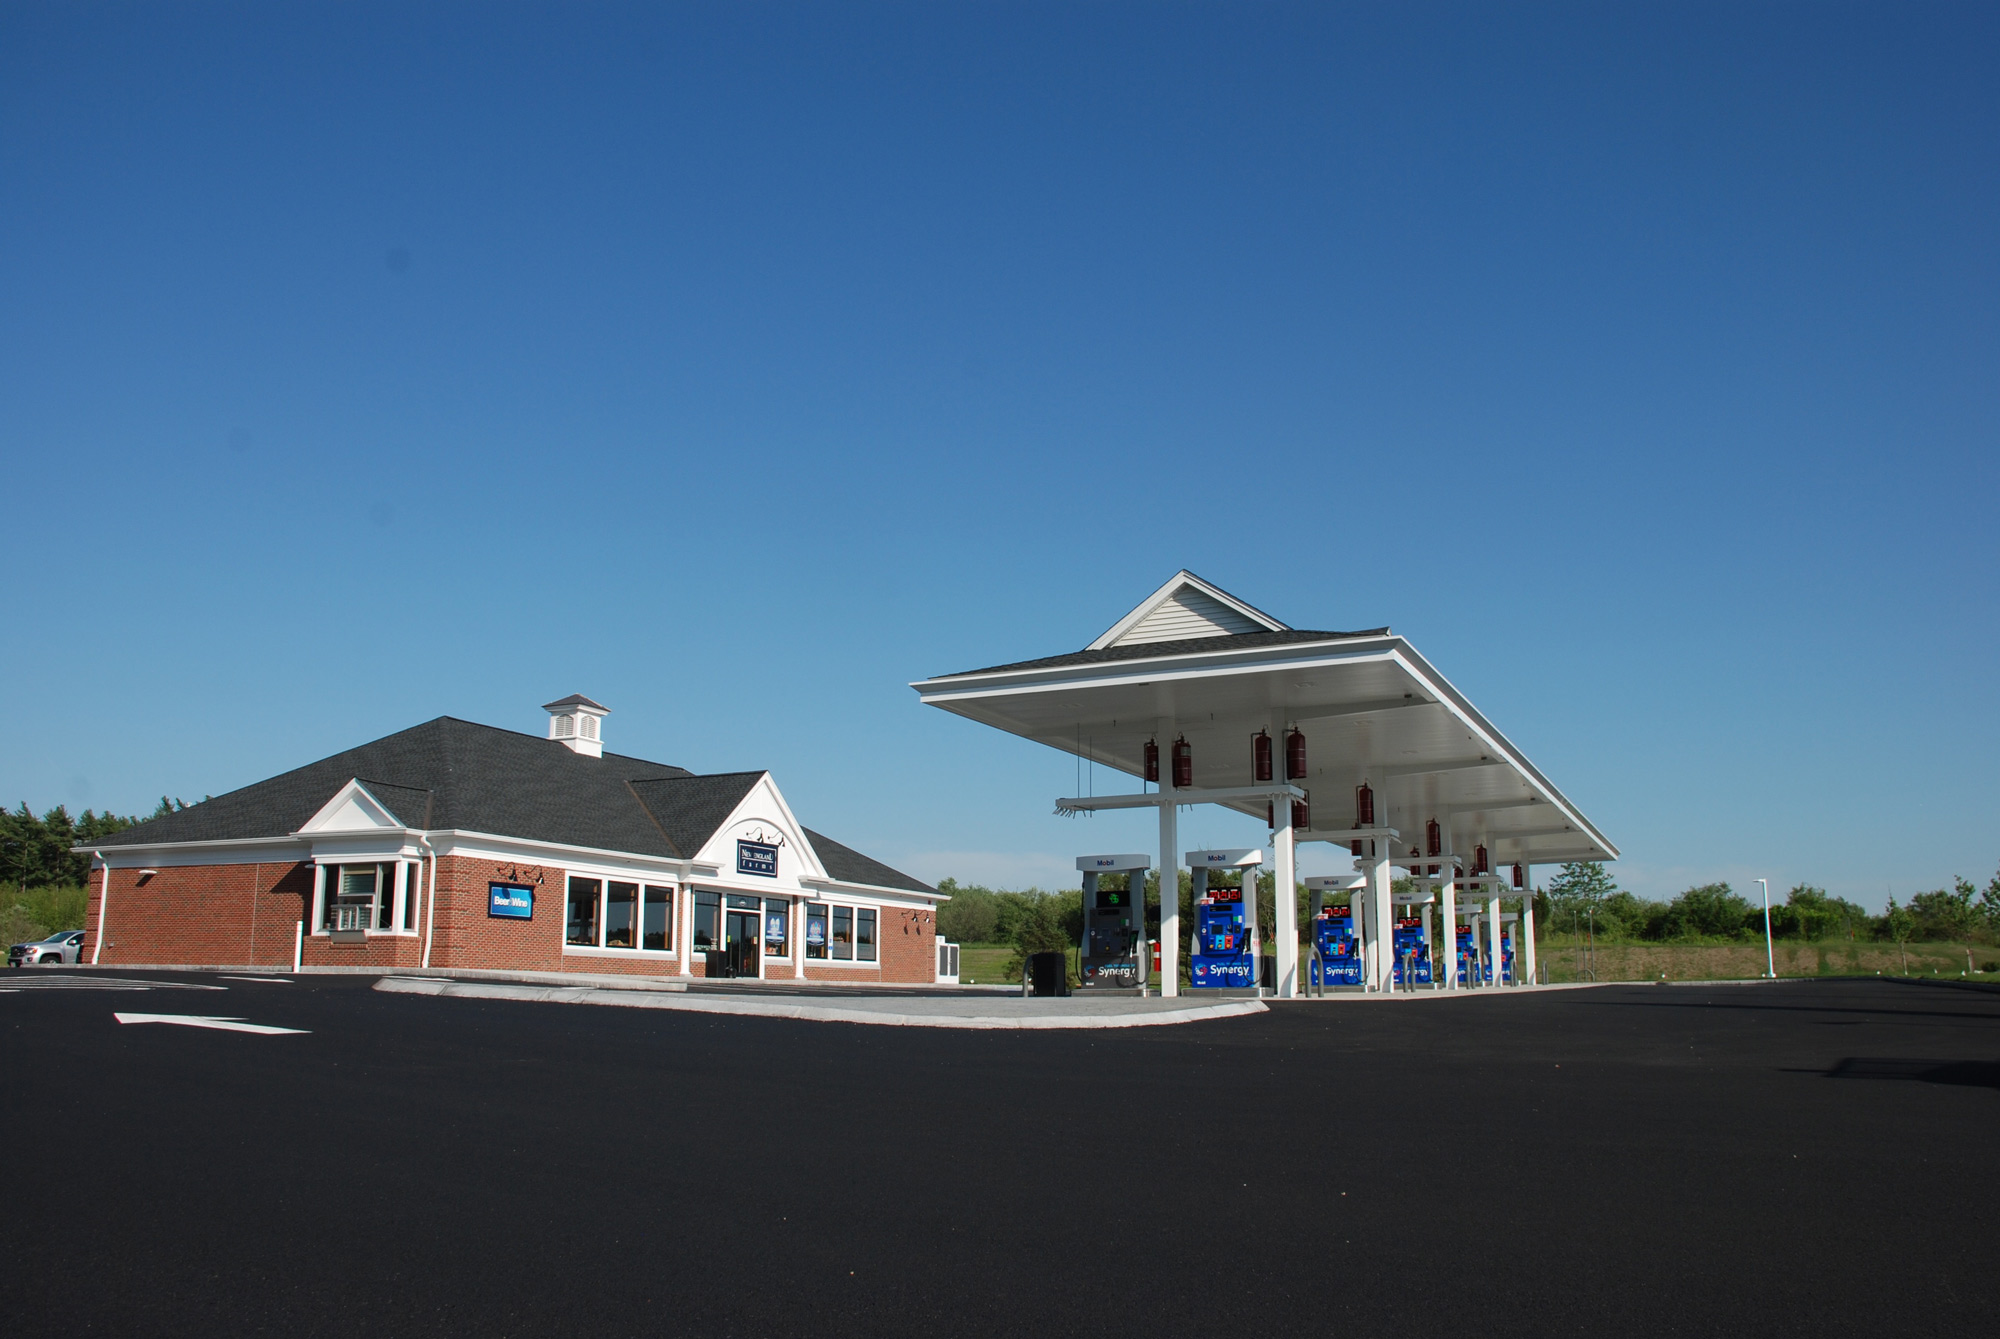 Outside New England Farms convenience store and gas station, New England Farms convenience store